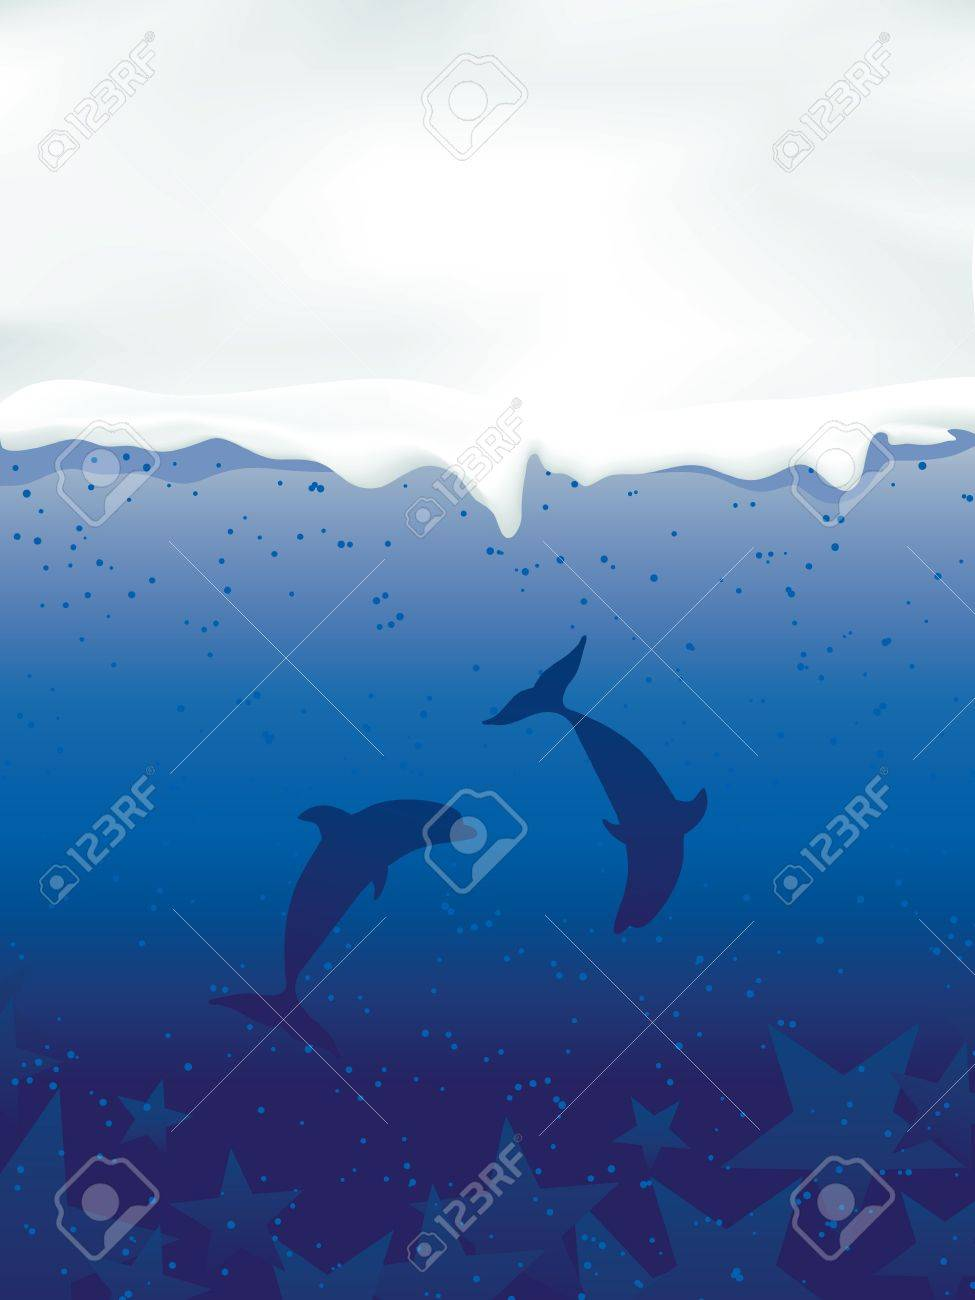 Underwater with dolphins and stars Stock Vector - 11785506